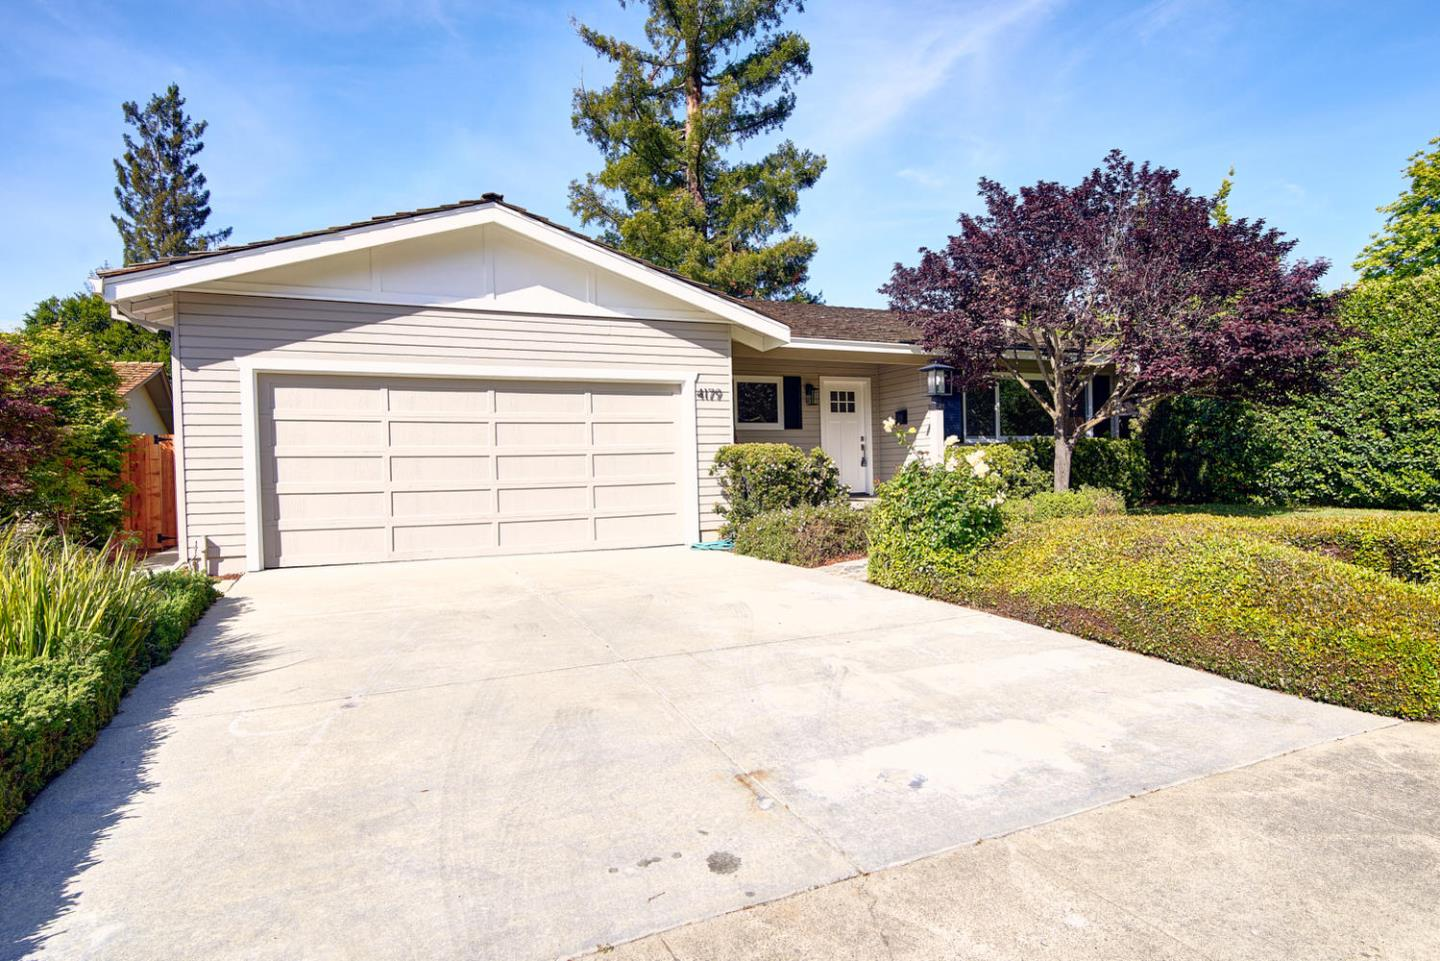 4179 MAYBELL WAY, PALO ALTO, CA 94306